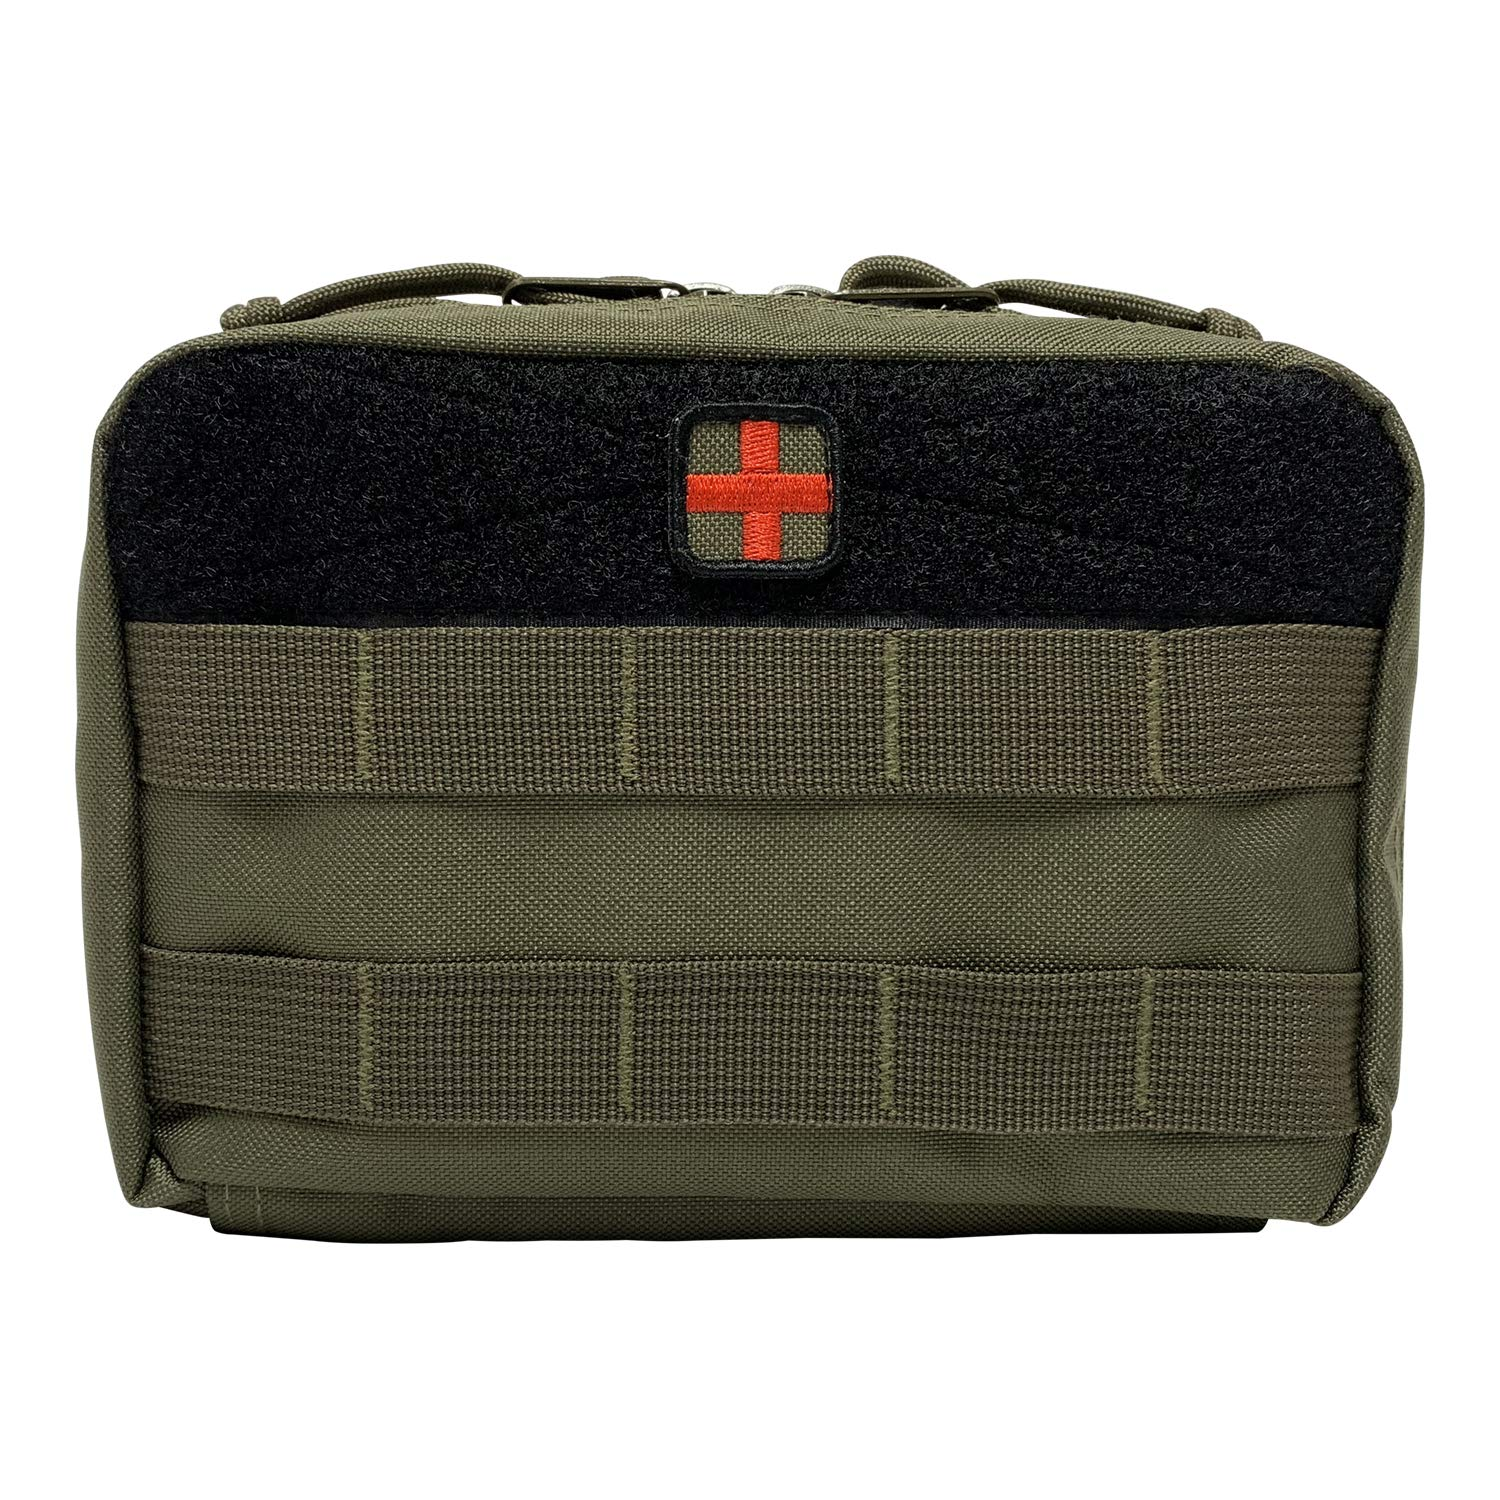 HSD Tactical Family First Aid Kit Admin EMT Medical IFAK Utility MOLLE Pouch (Ranger Green)